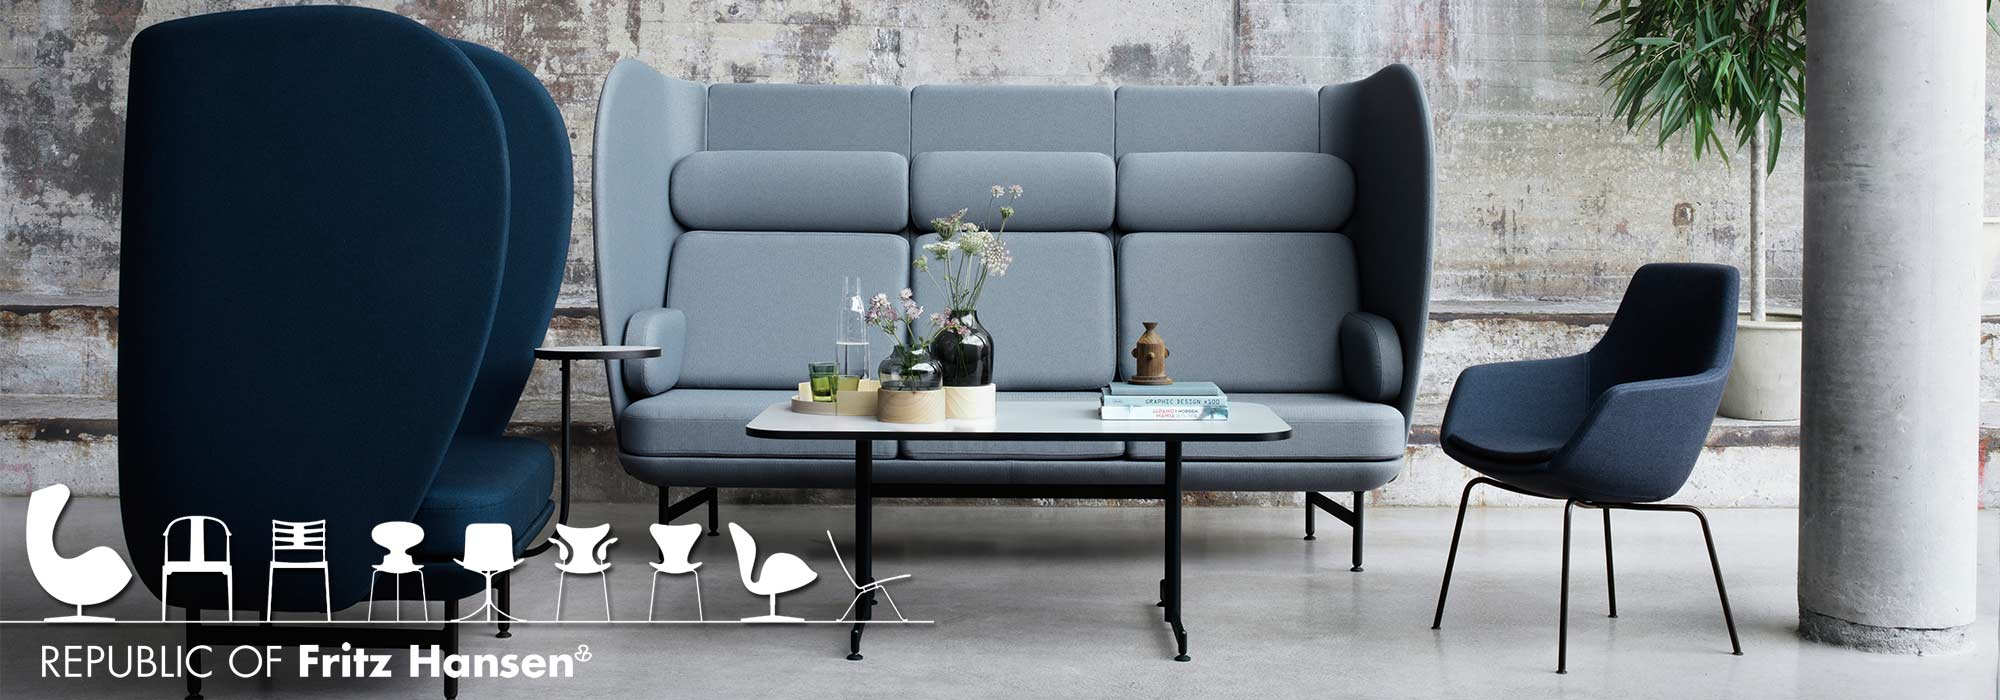 Fritz Hansen Plenum Seating